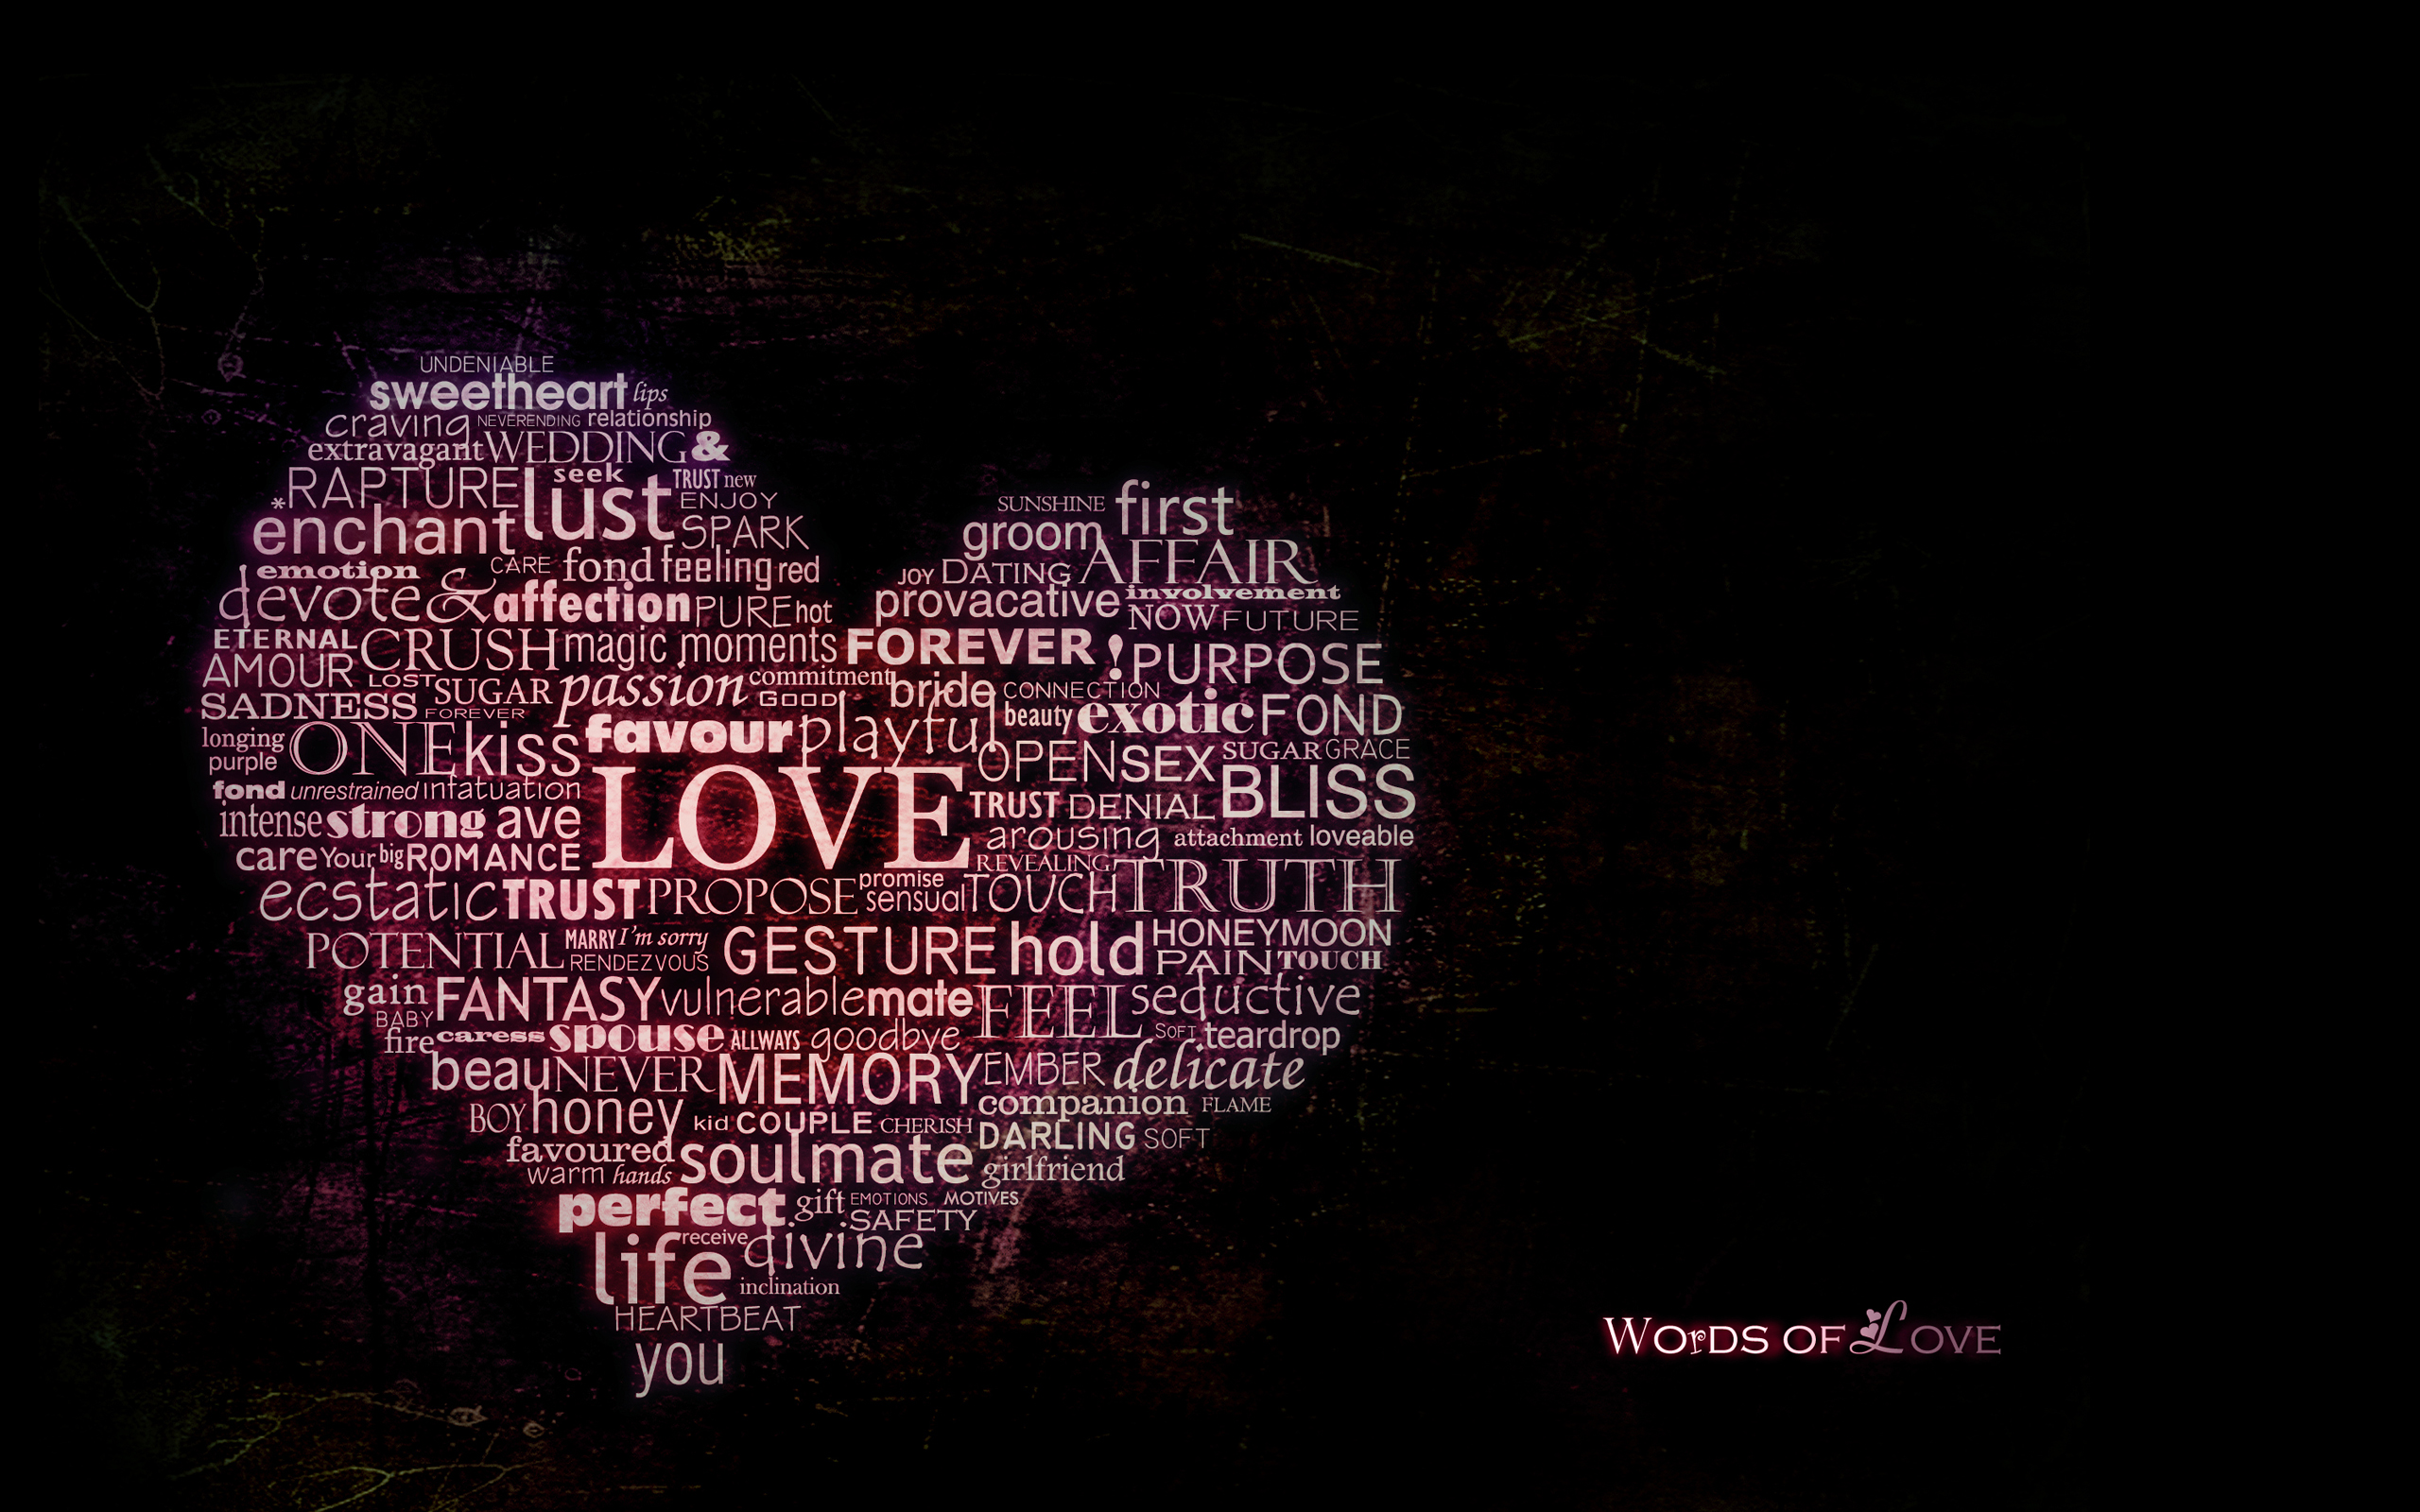 words of love wallpapers | words of love stock photos